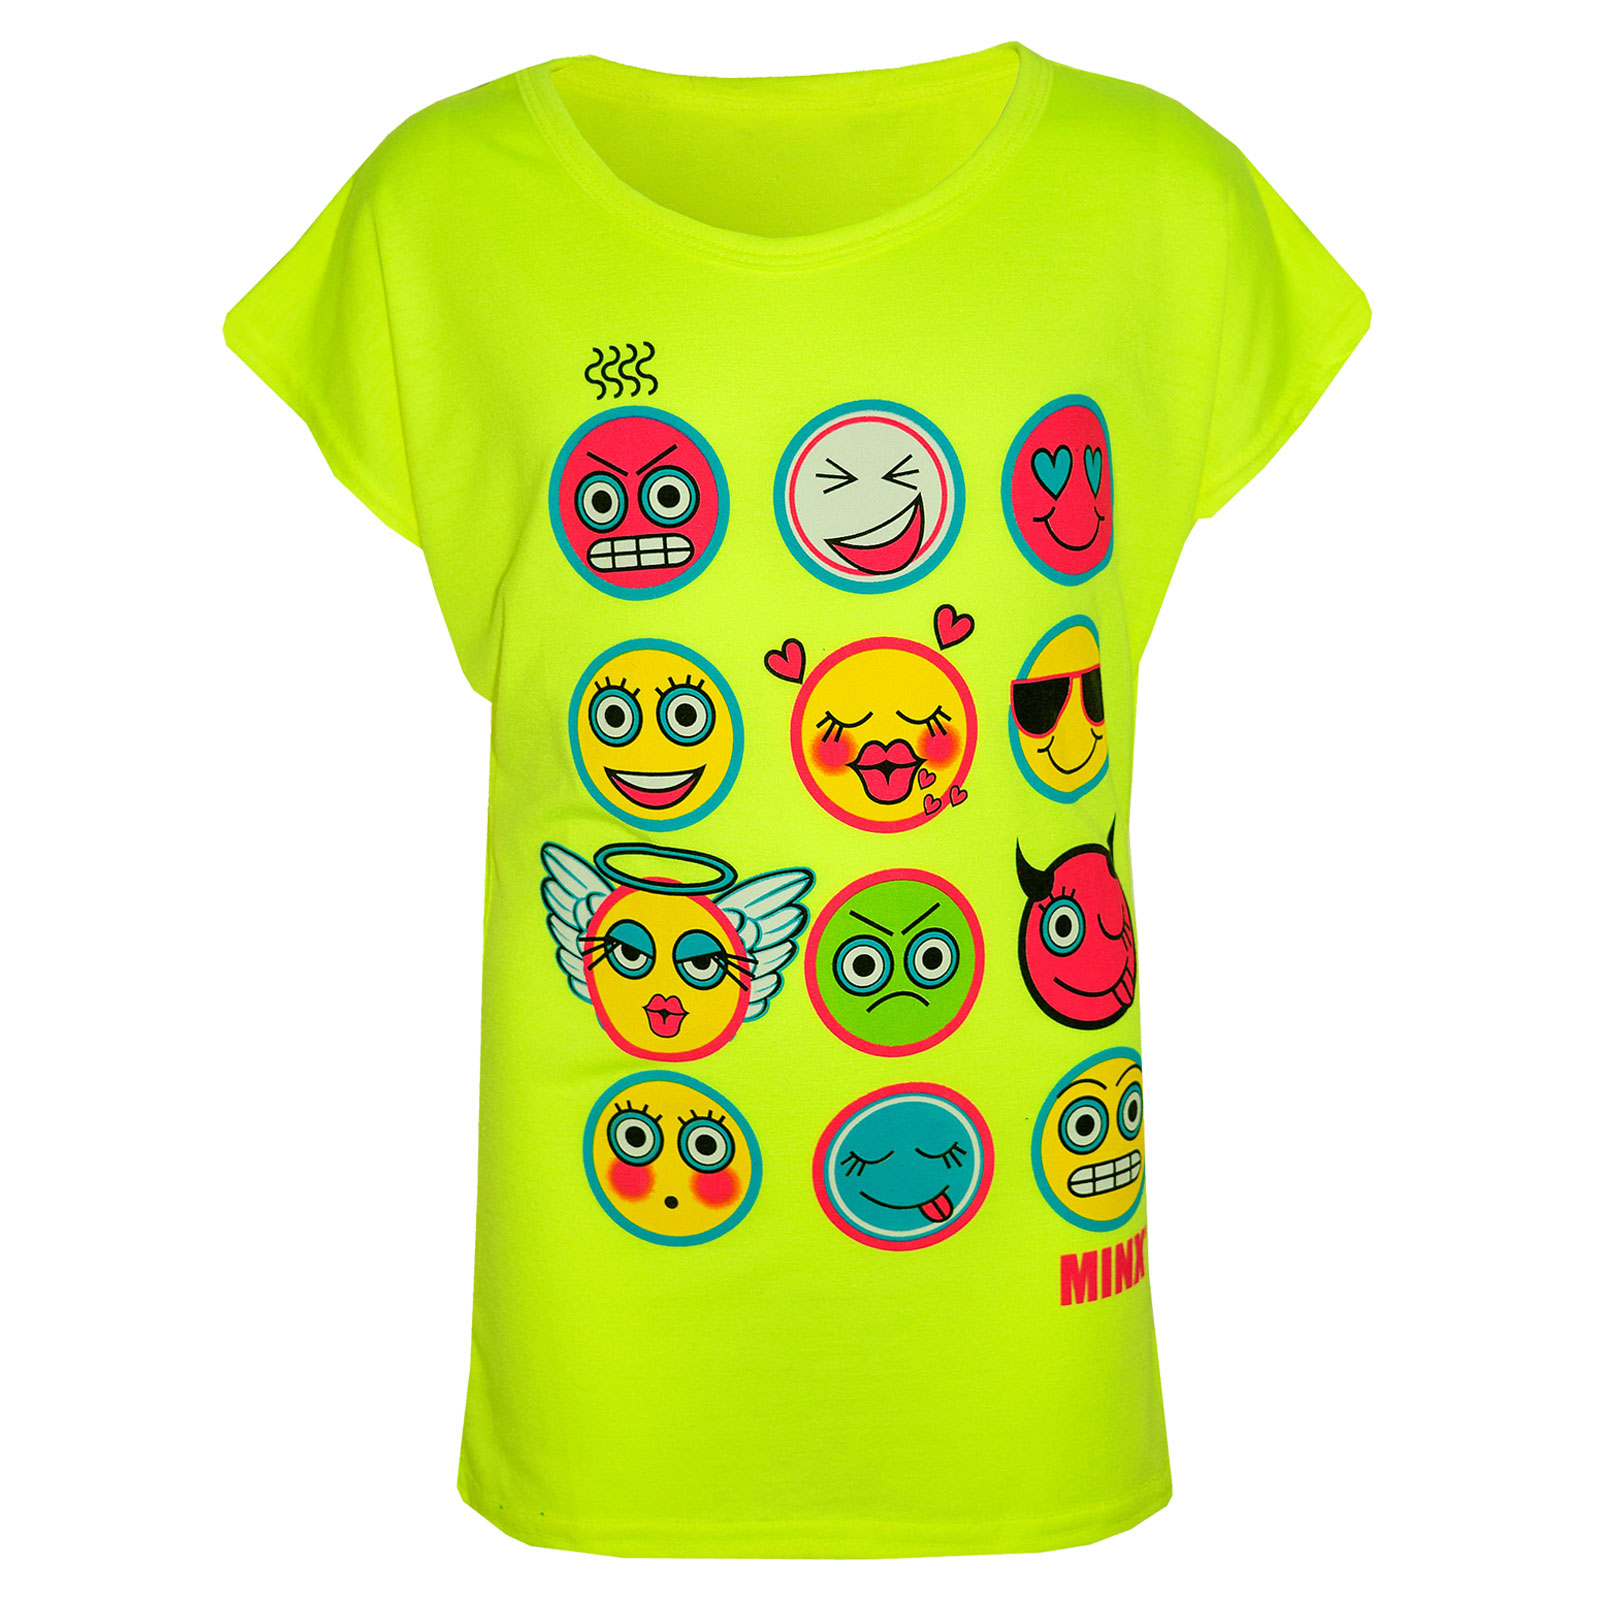 Cover your body with amazing Neon Light t-shirts from Zazzle. Search for your new favorite shirt from thousands of great designs! Neon light rock on music kids tshirt. $ 15% Off with code WEDNESDAYWOW. New York Neon Lights T-Shirt. $ 15% Off with code WEDNESDAYWOW. Neon Lights In Fours T-Shirt.